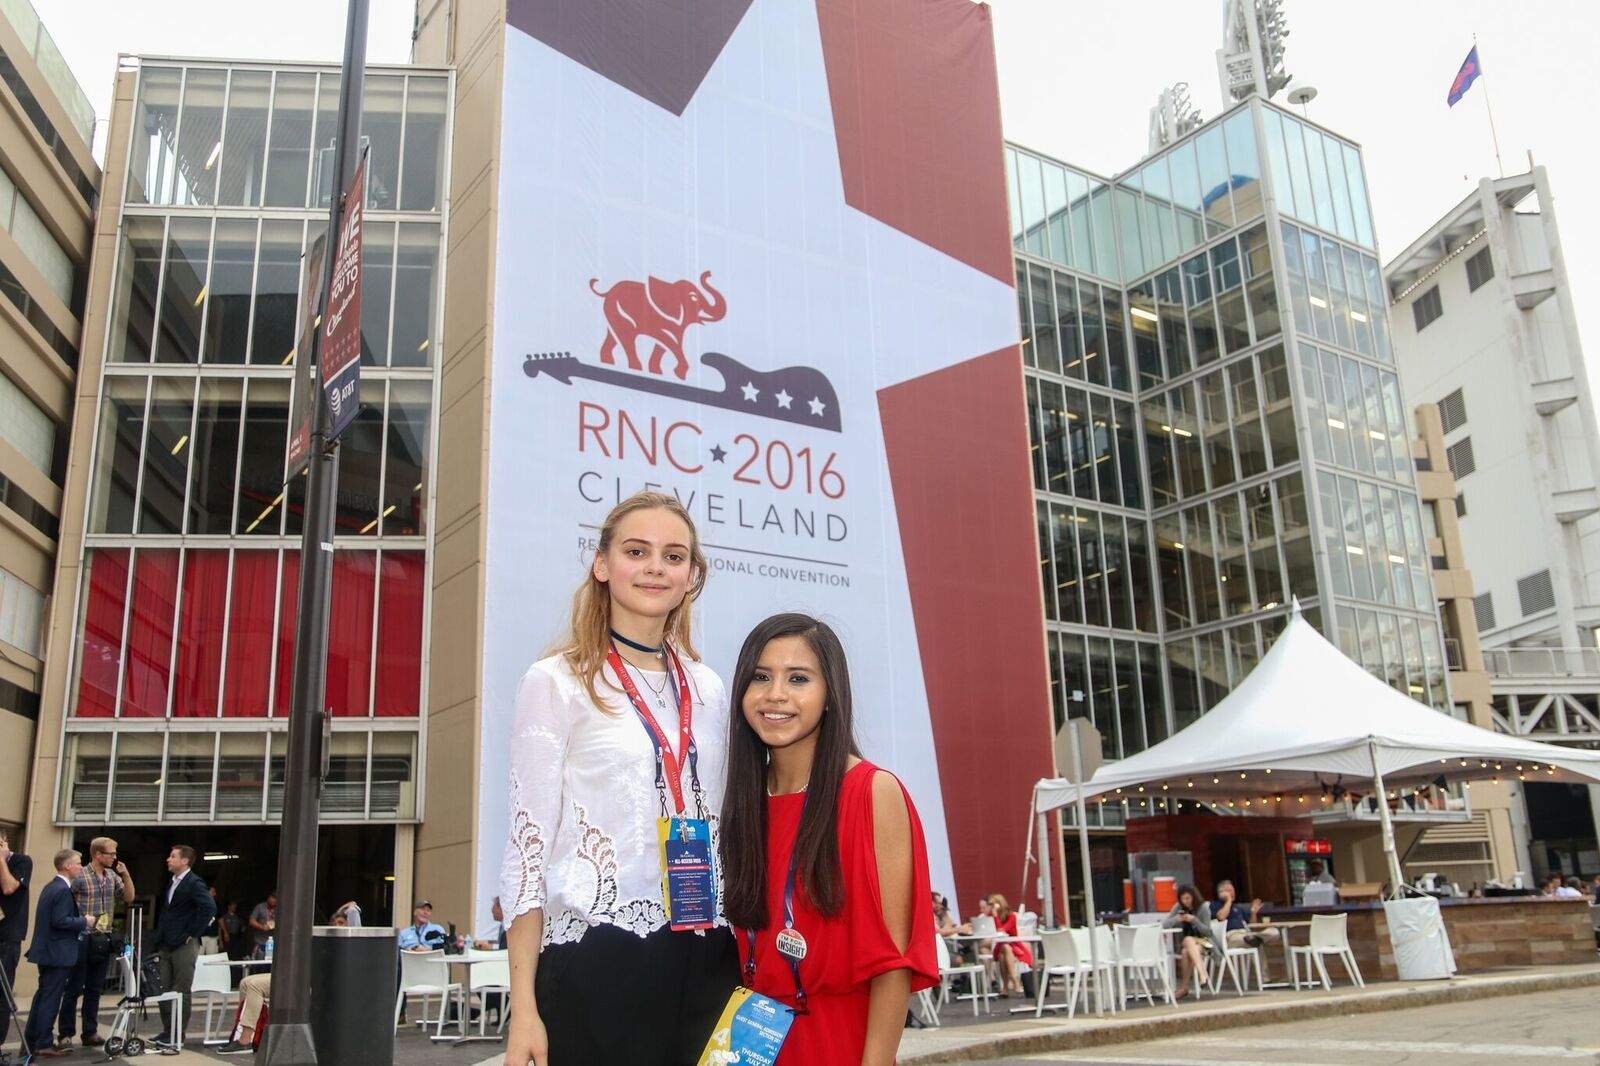 unspecified-23 (2)